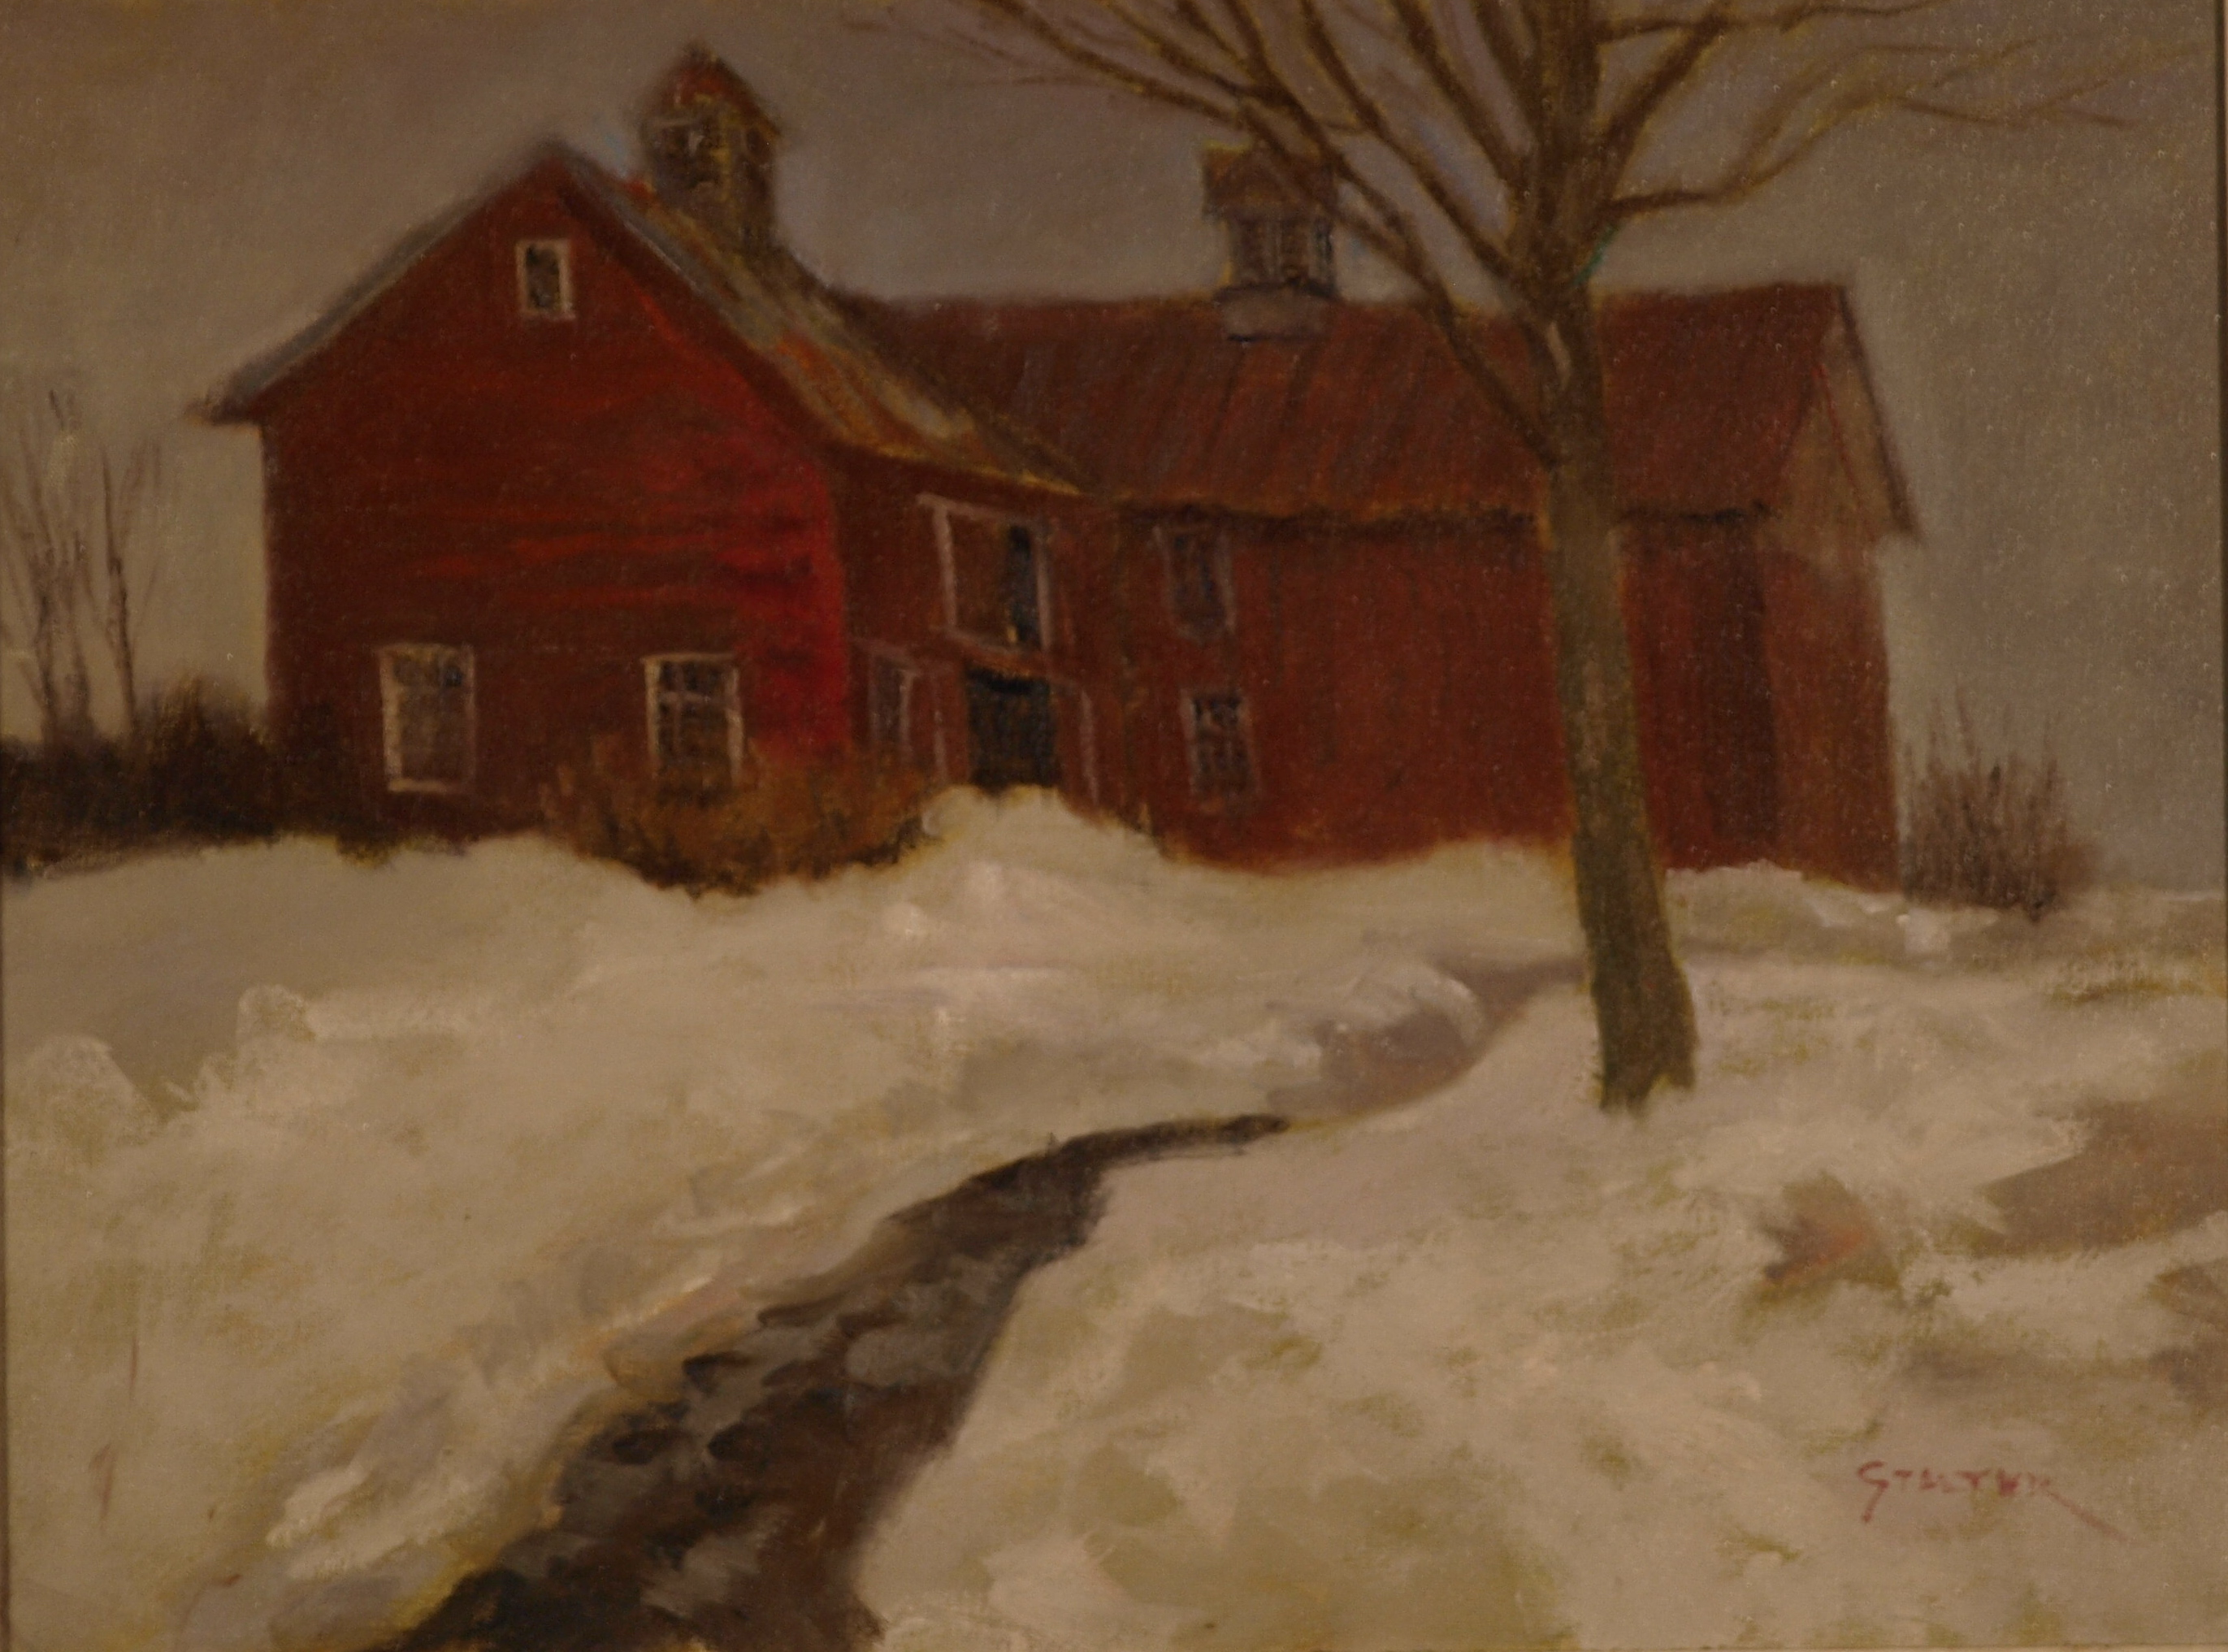 Yale Farm in Snow, Oil on Canvas, 18 x 24 Inches, by Richard Stalter, $600